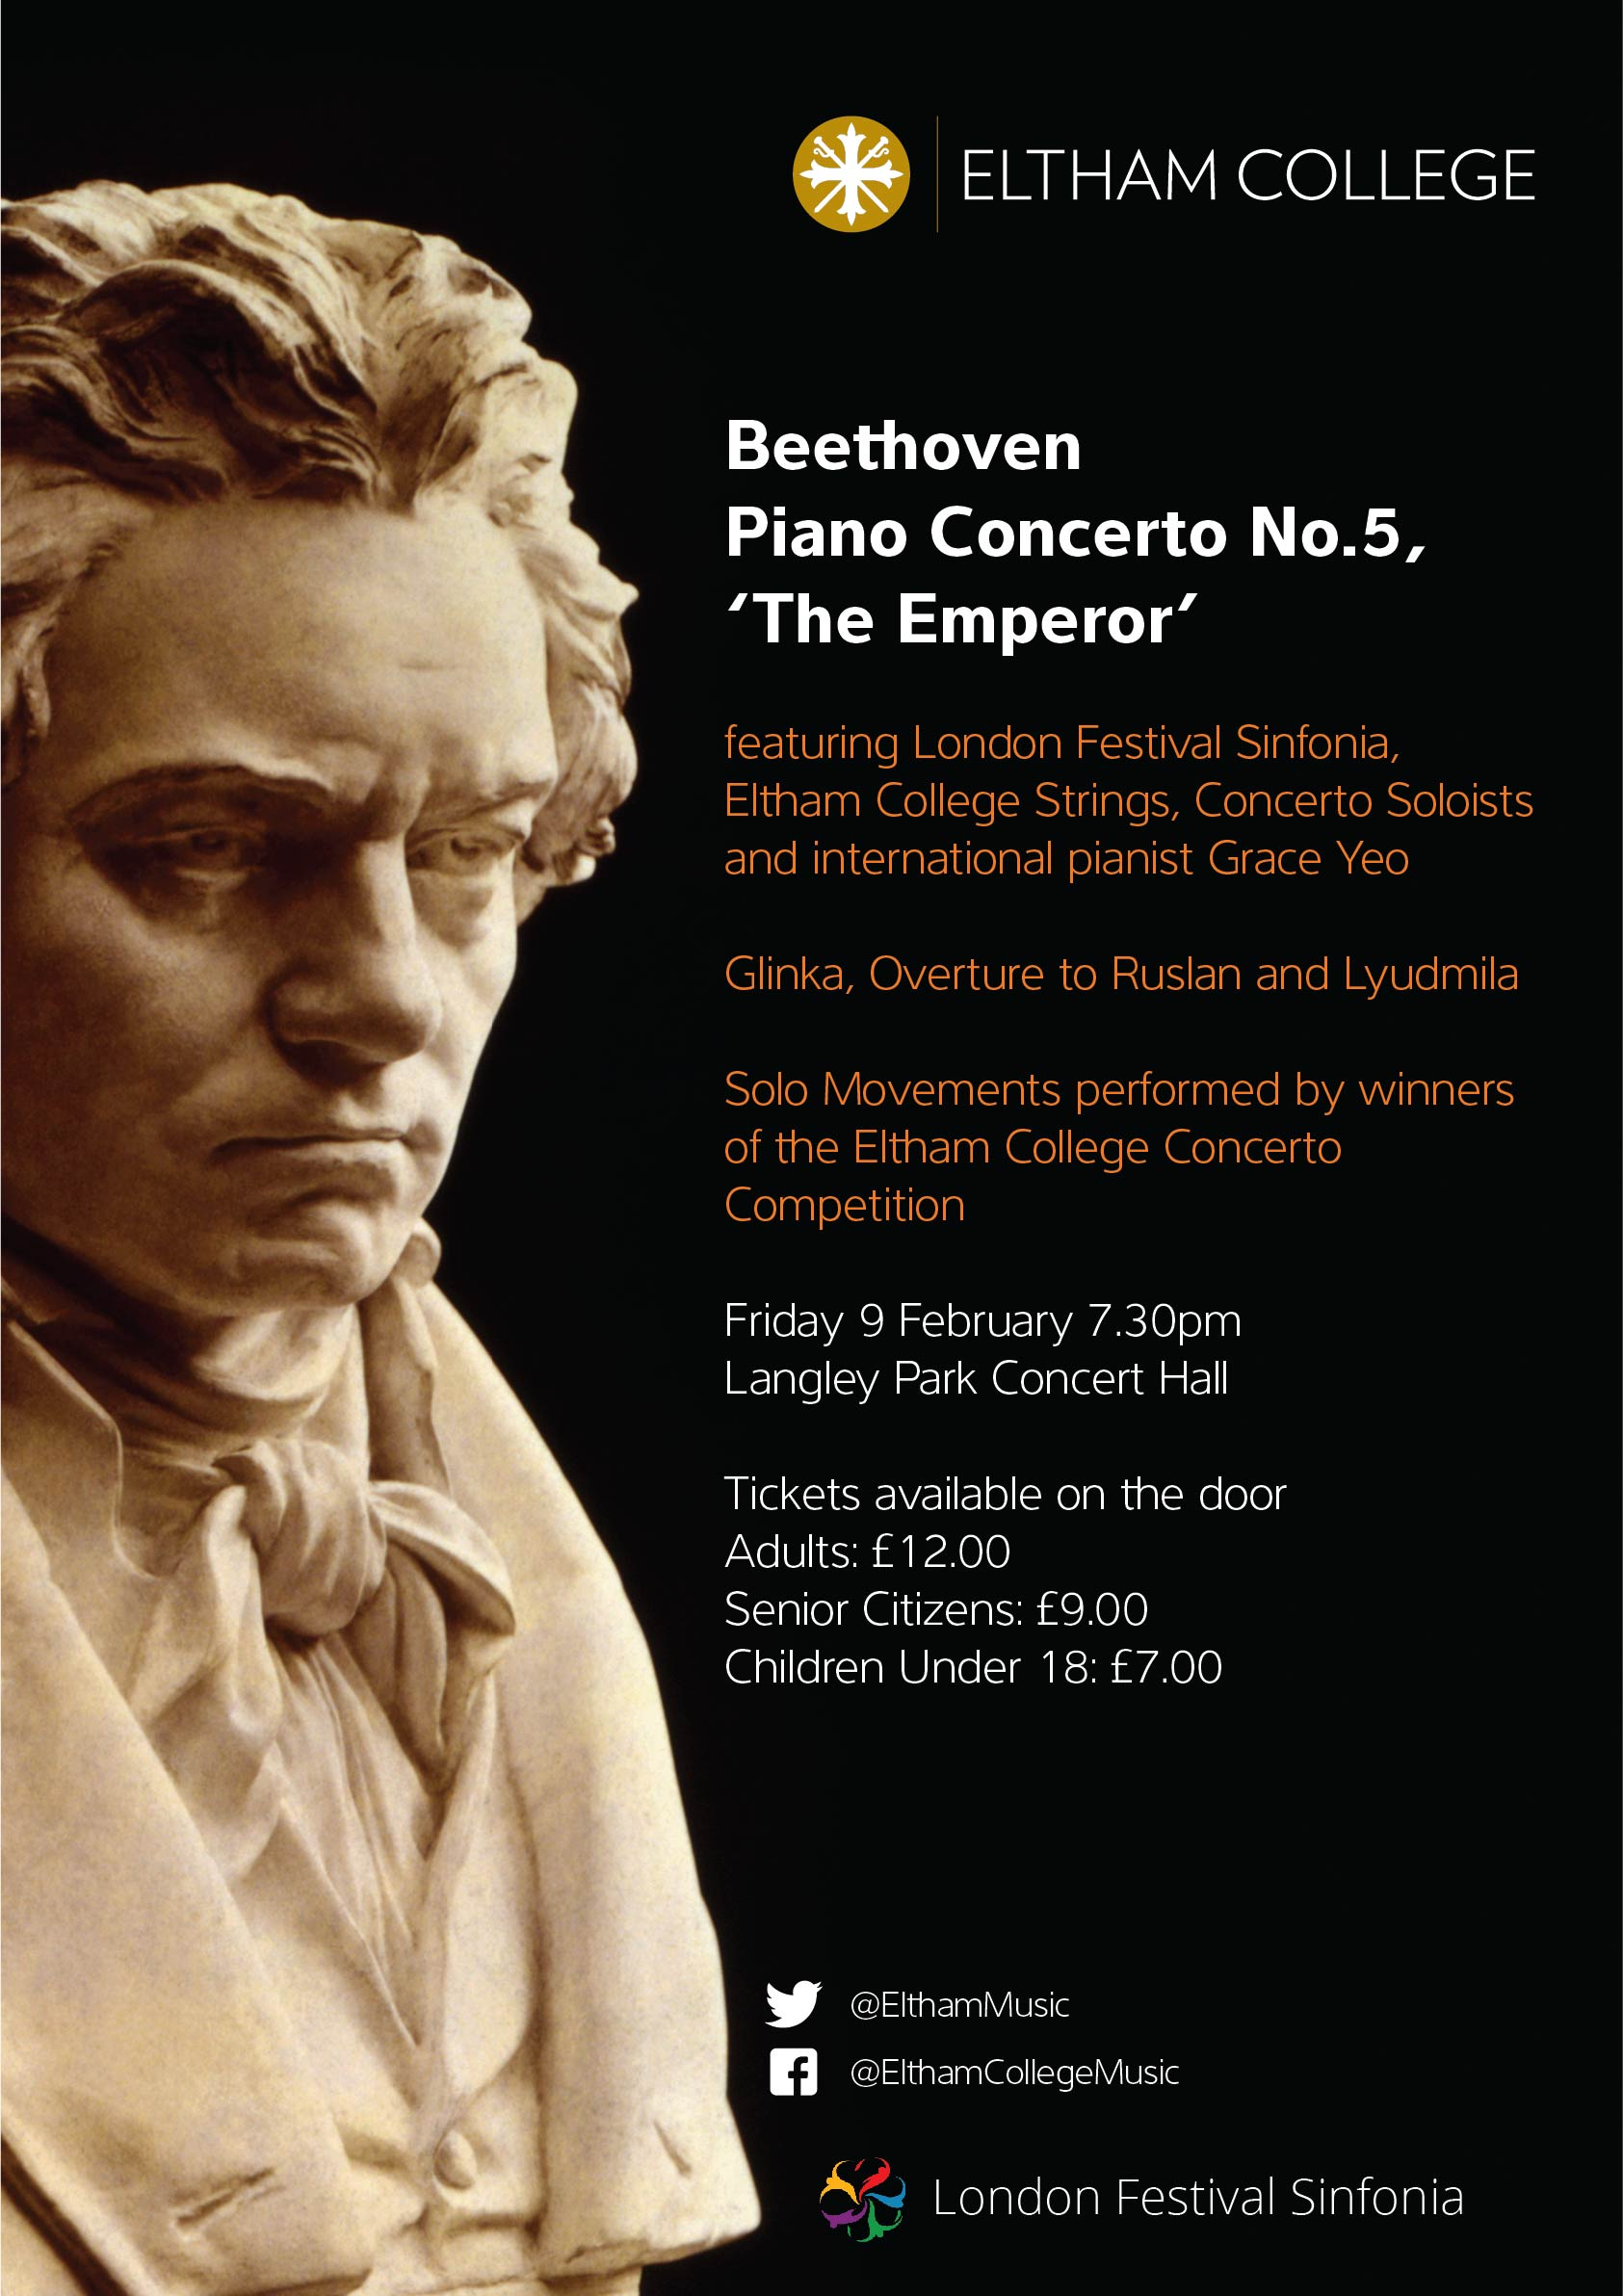 A Concerto Concert - with London Festival Sinfonia and